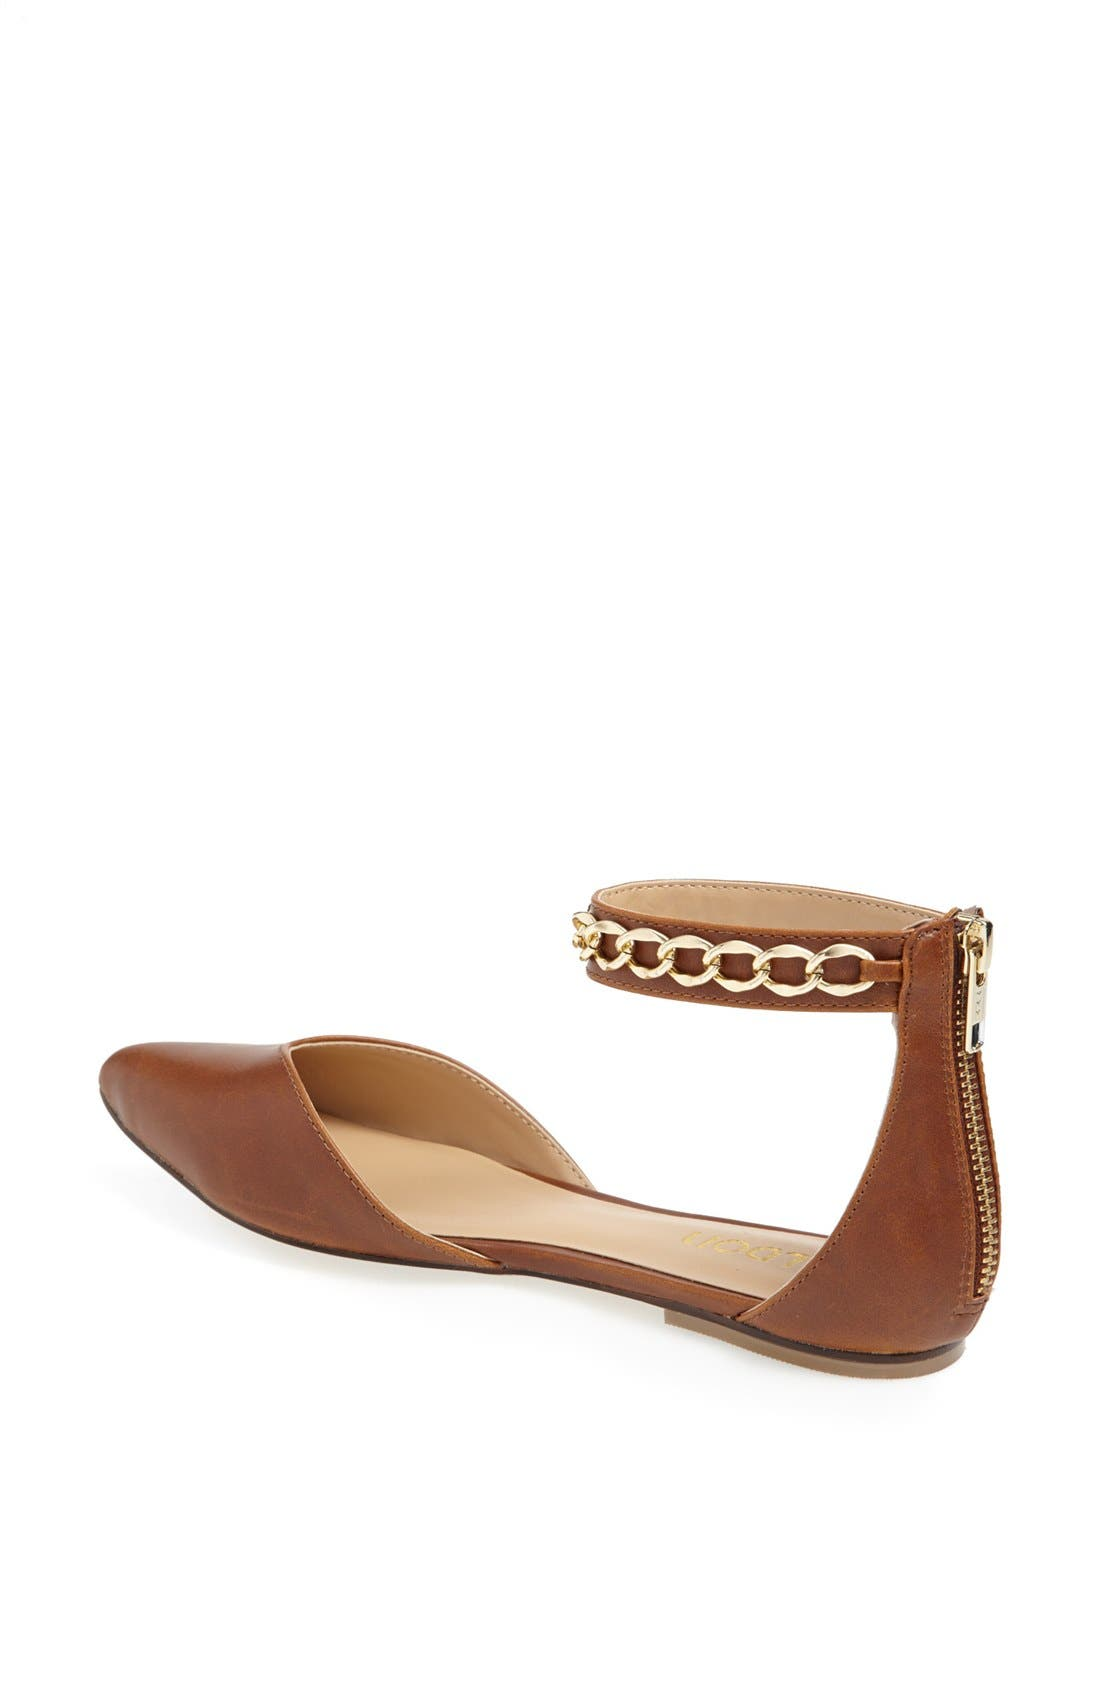 'Anya' Ankle Strap D'Orsay Flat,                             Alternate thumbnail 11, color,